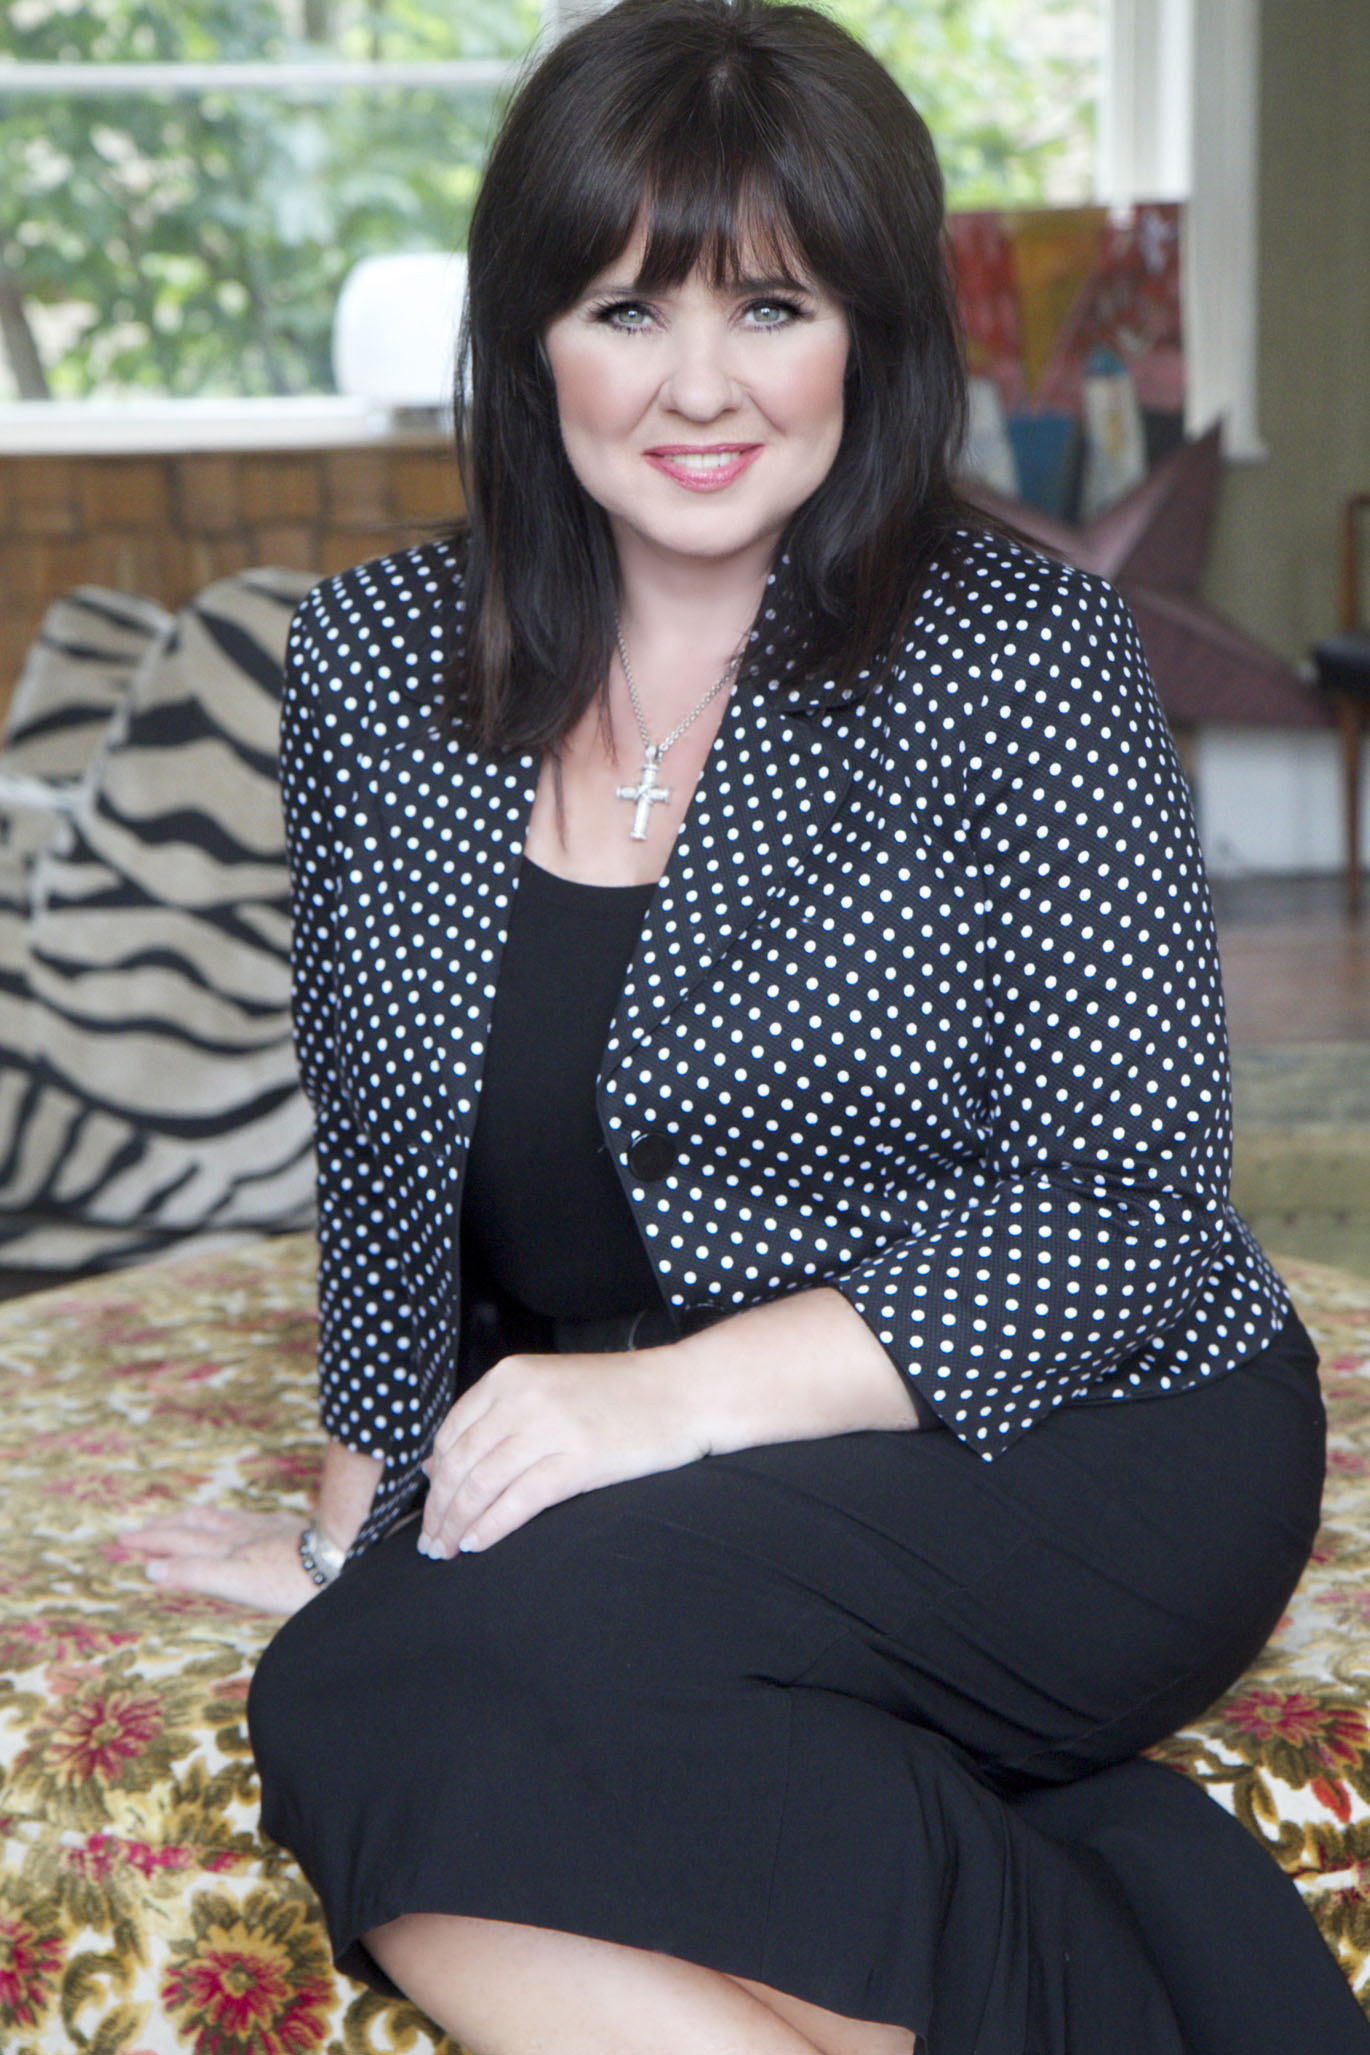 Loose Womens Coleen Nolan Shocks With Gay Rights ISIS